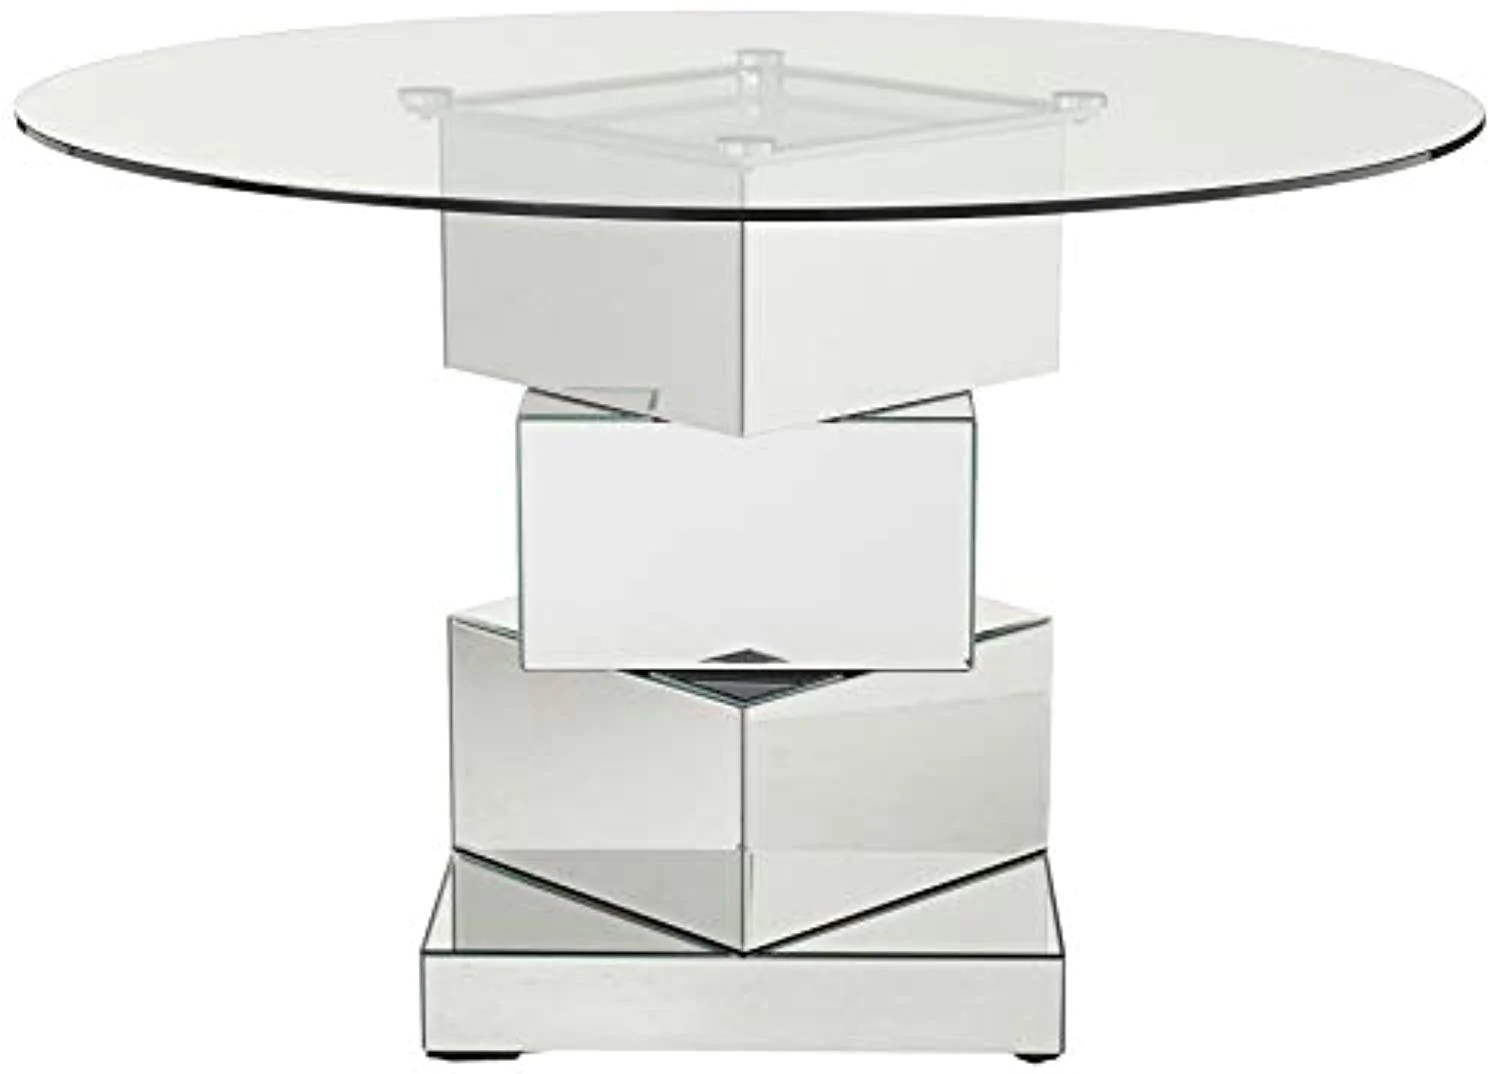 Contemporary Mirrored Dining Table Round Tempred Glass Top 50 W X 5 Ek Chic Home